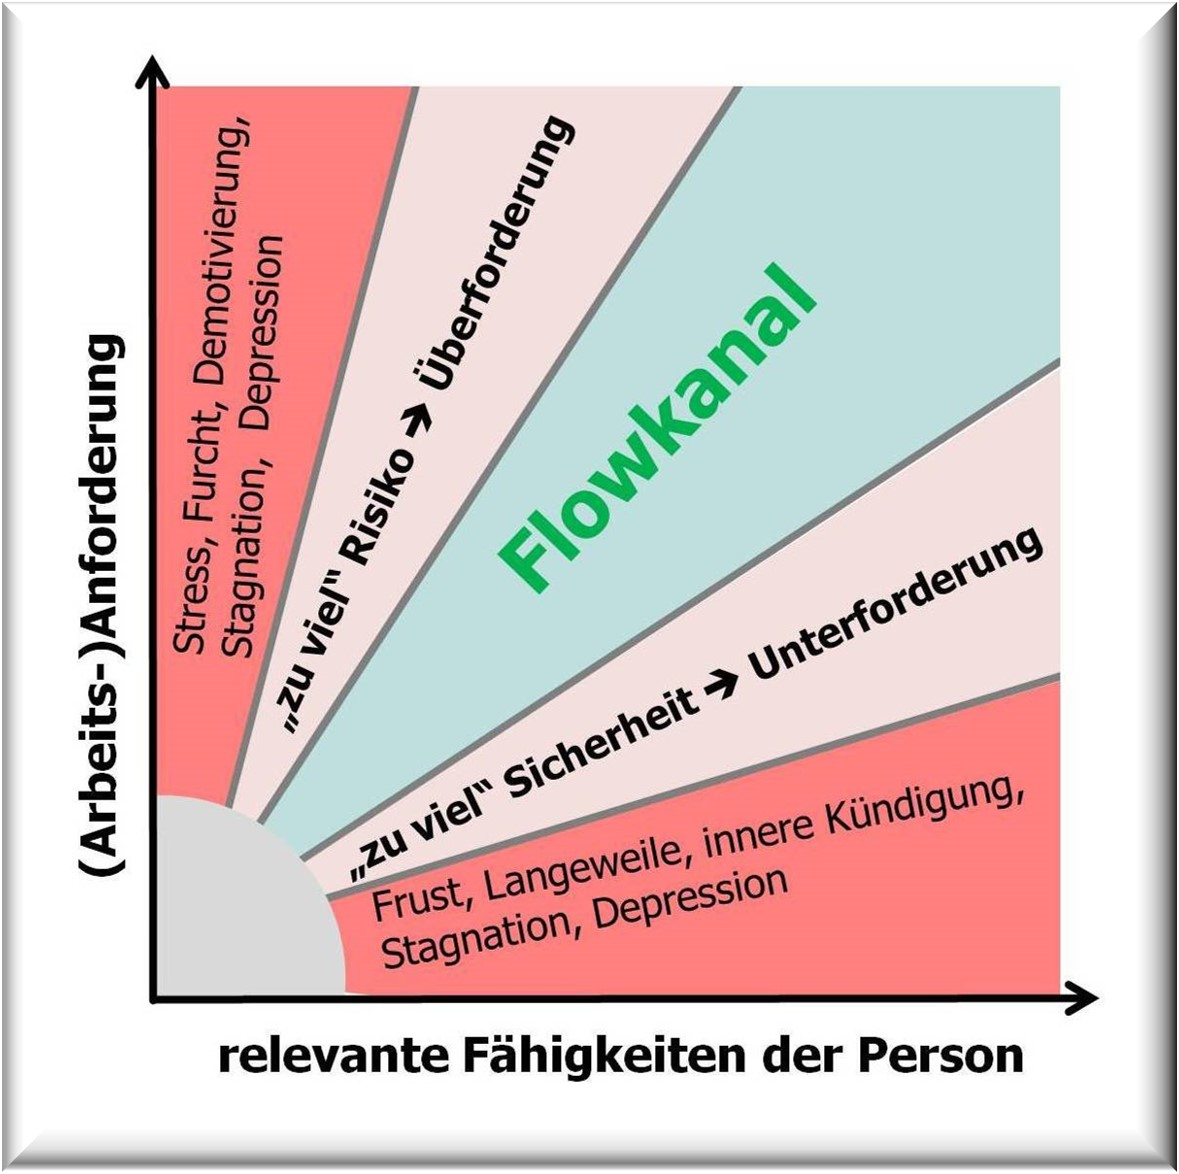 Csíkszentmihályi, Flowkanal, Flow, Motivation, Über- bzw. Unterforderung, Person-Job-Passung,  Hartmut Neusitzer, Ressourcencoach Hamburg,